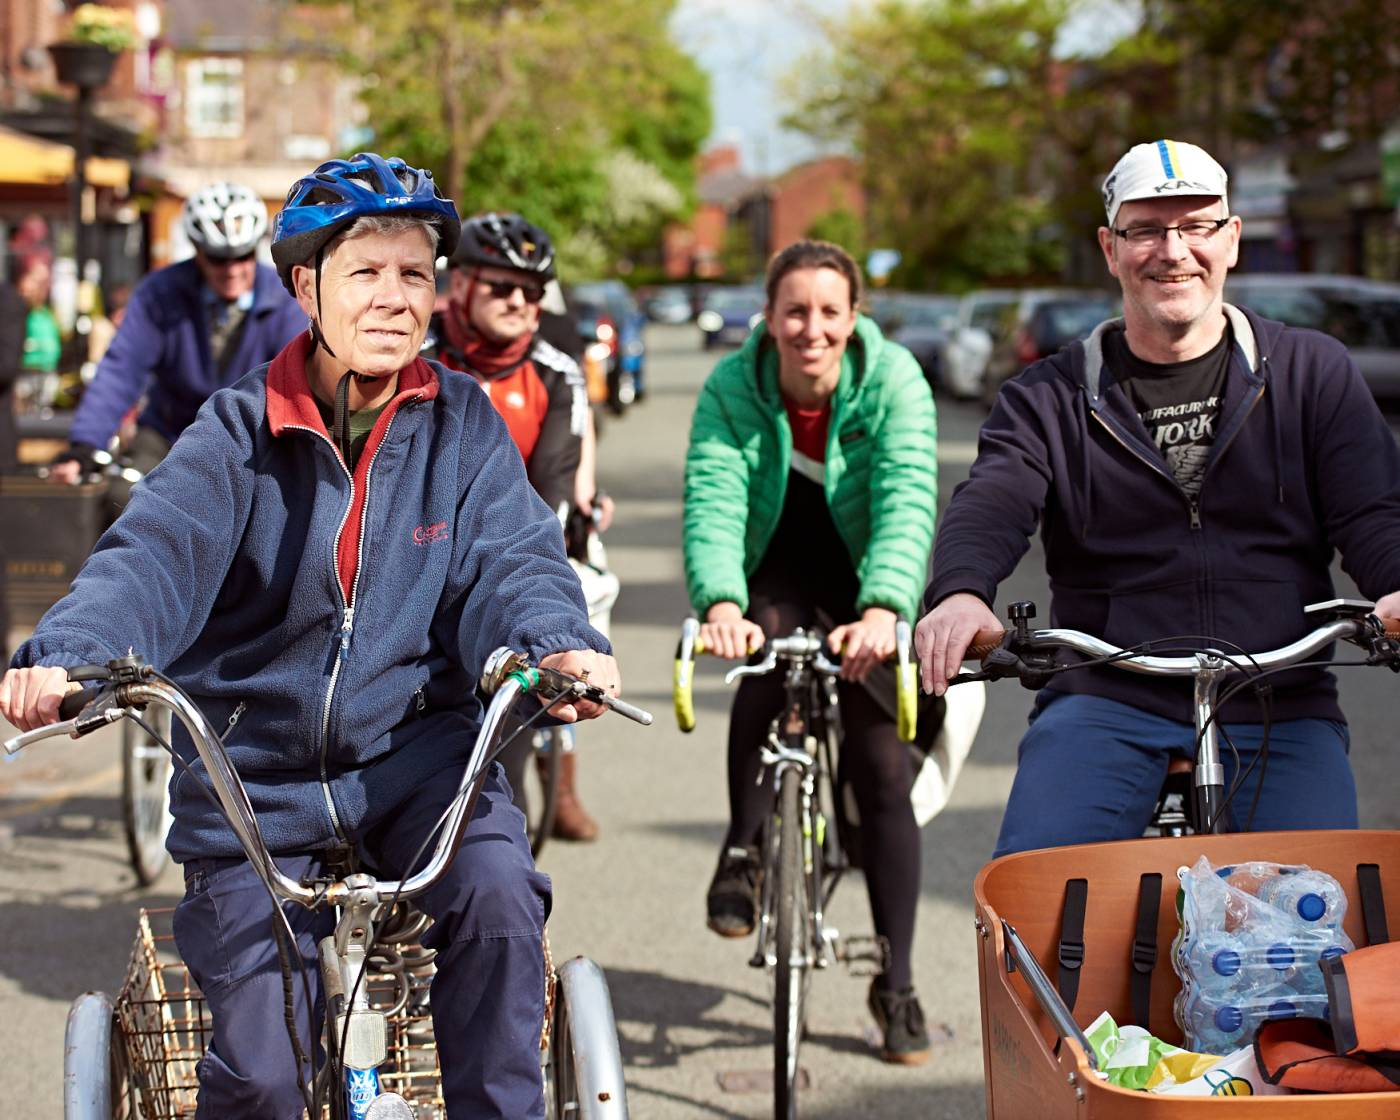 Group of smiling people riding bikes together